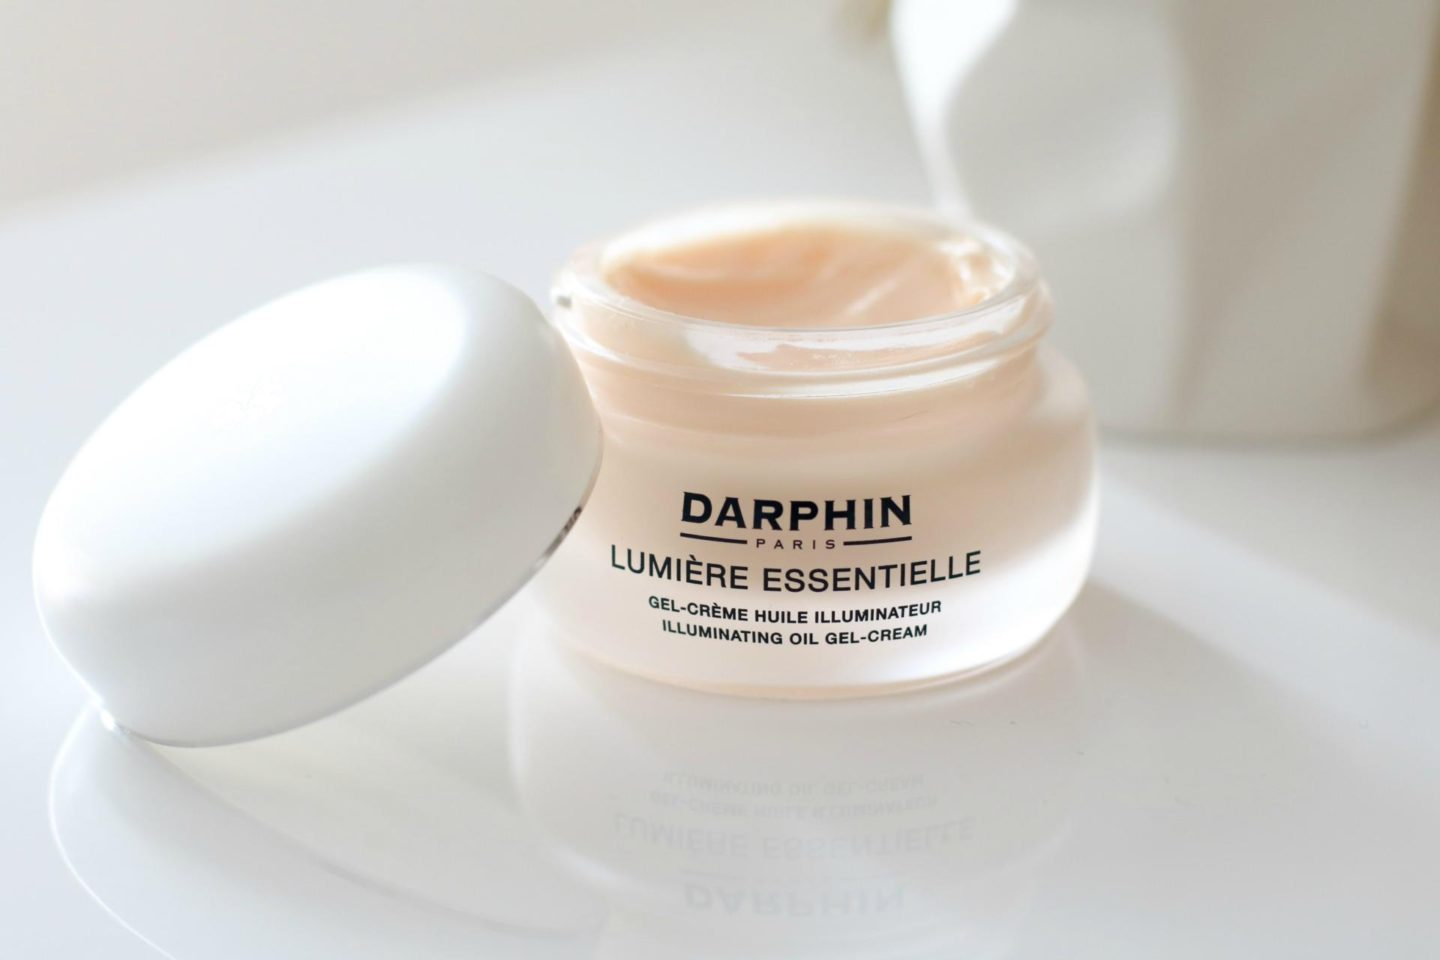 Darphin Paris Lumiere Essentielle Collection